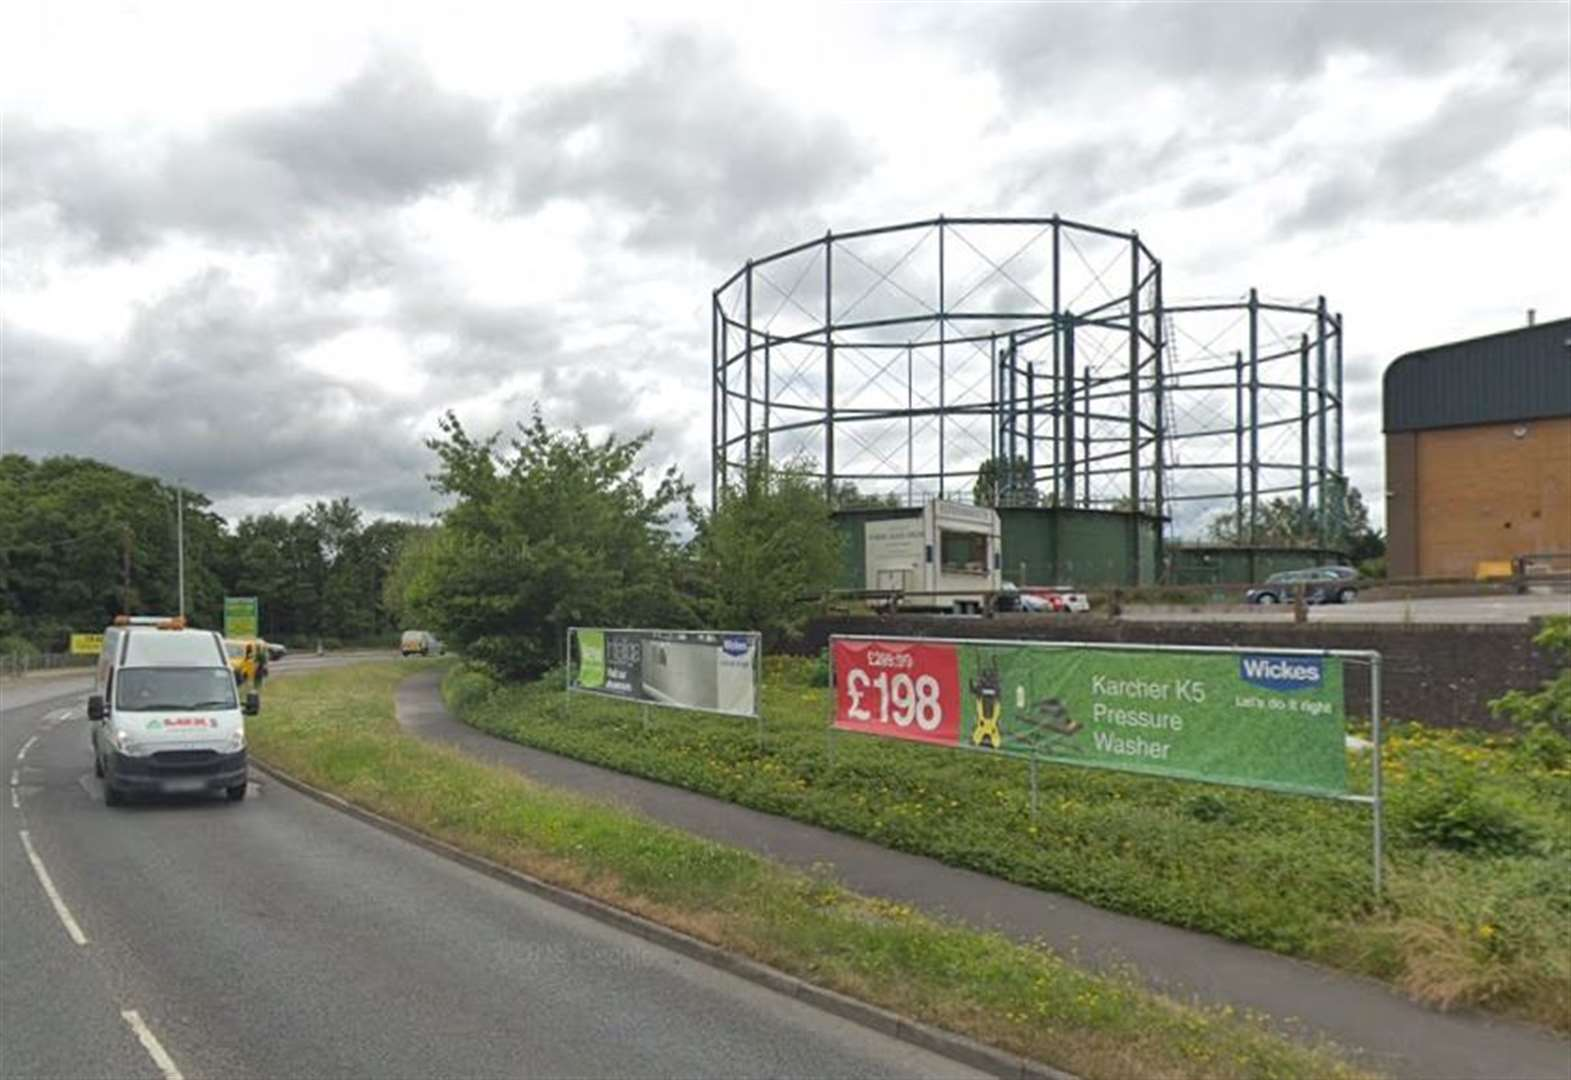 Plans for 136 new homes on gas works site